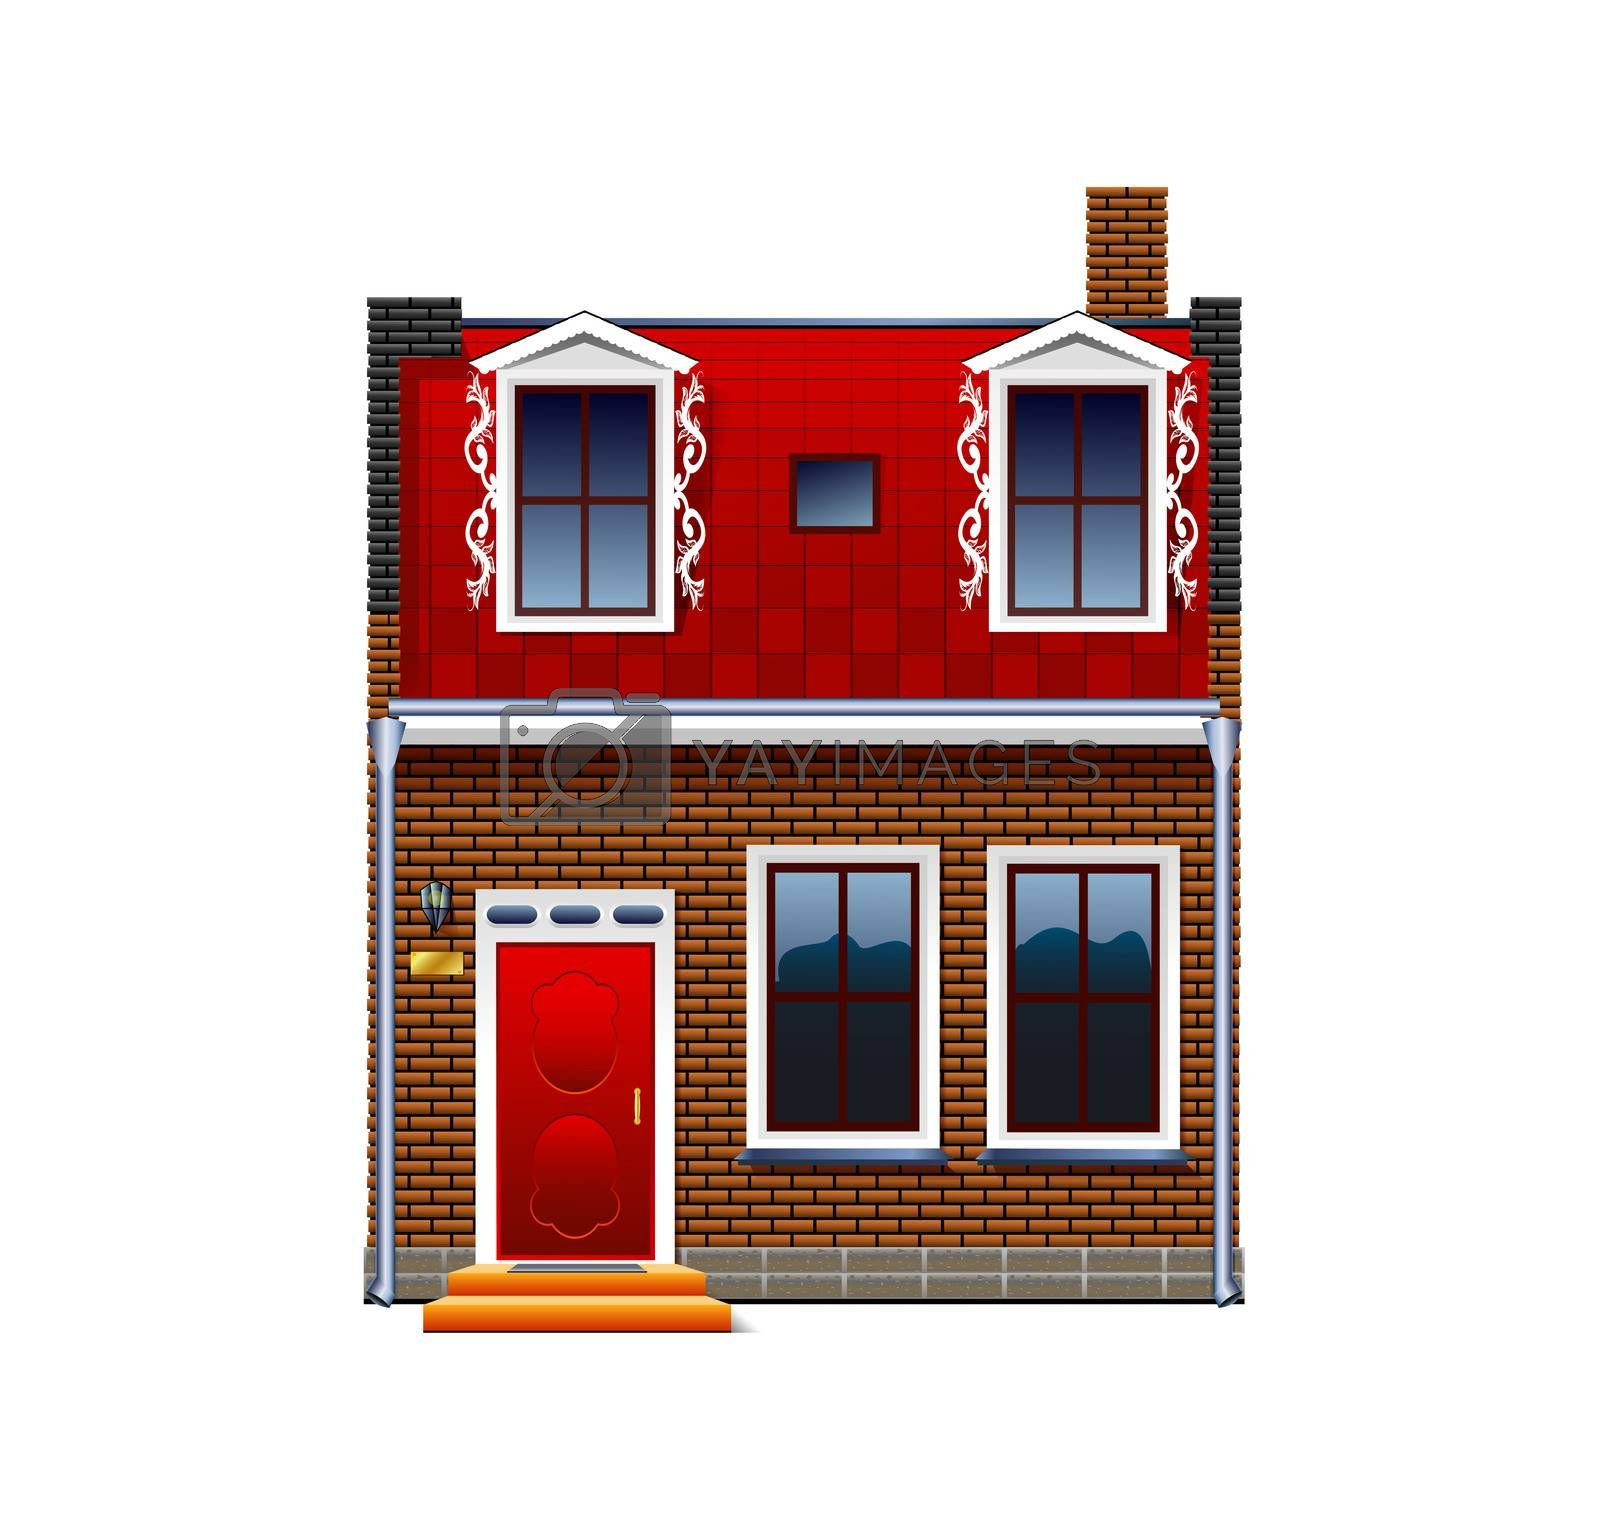 A small house on a white background.